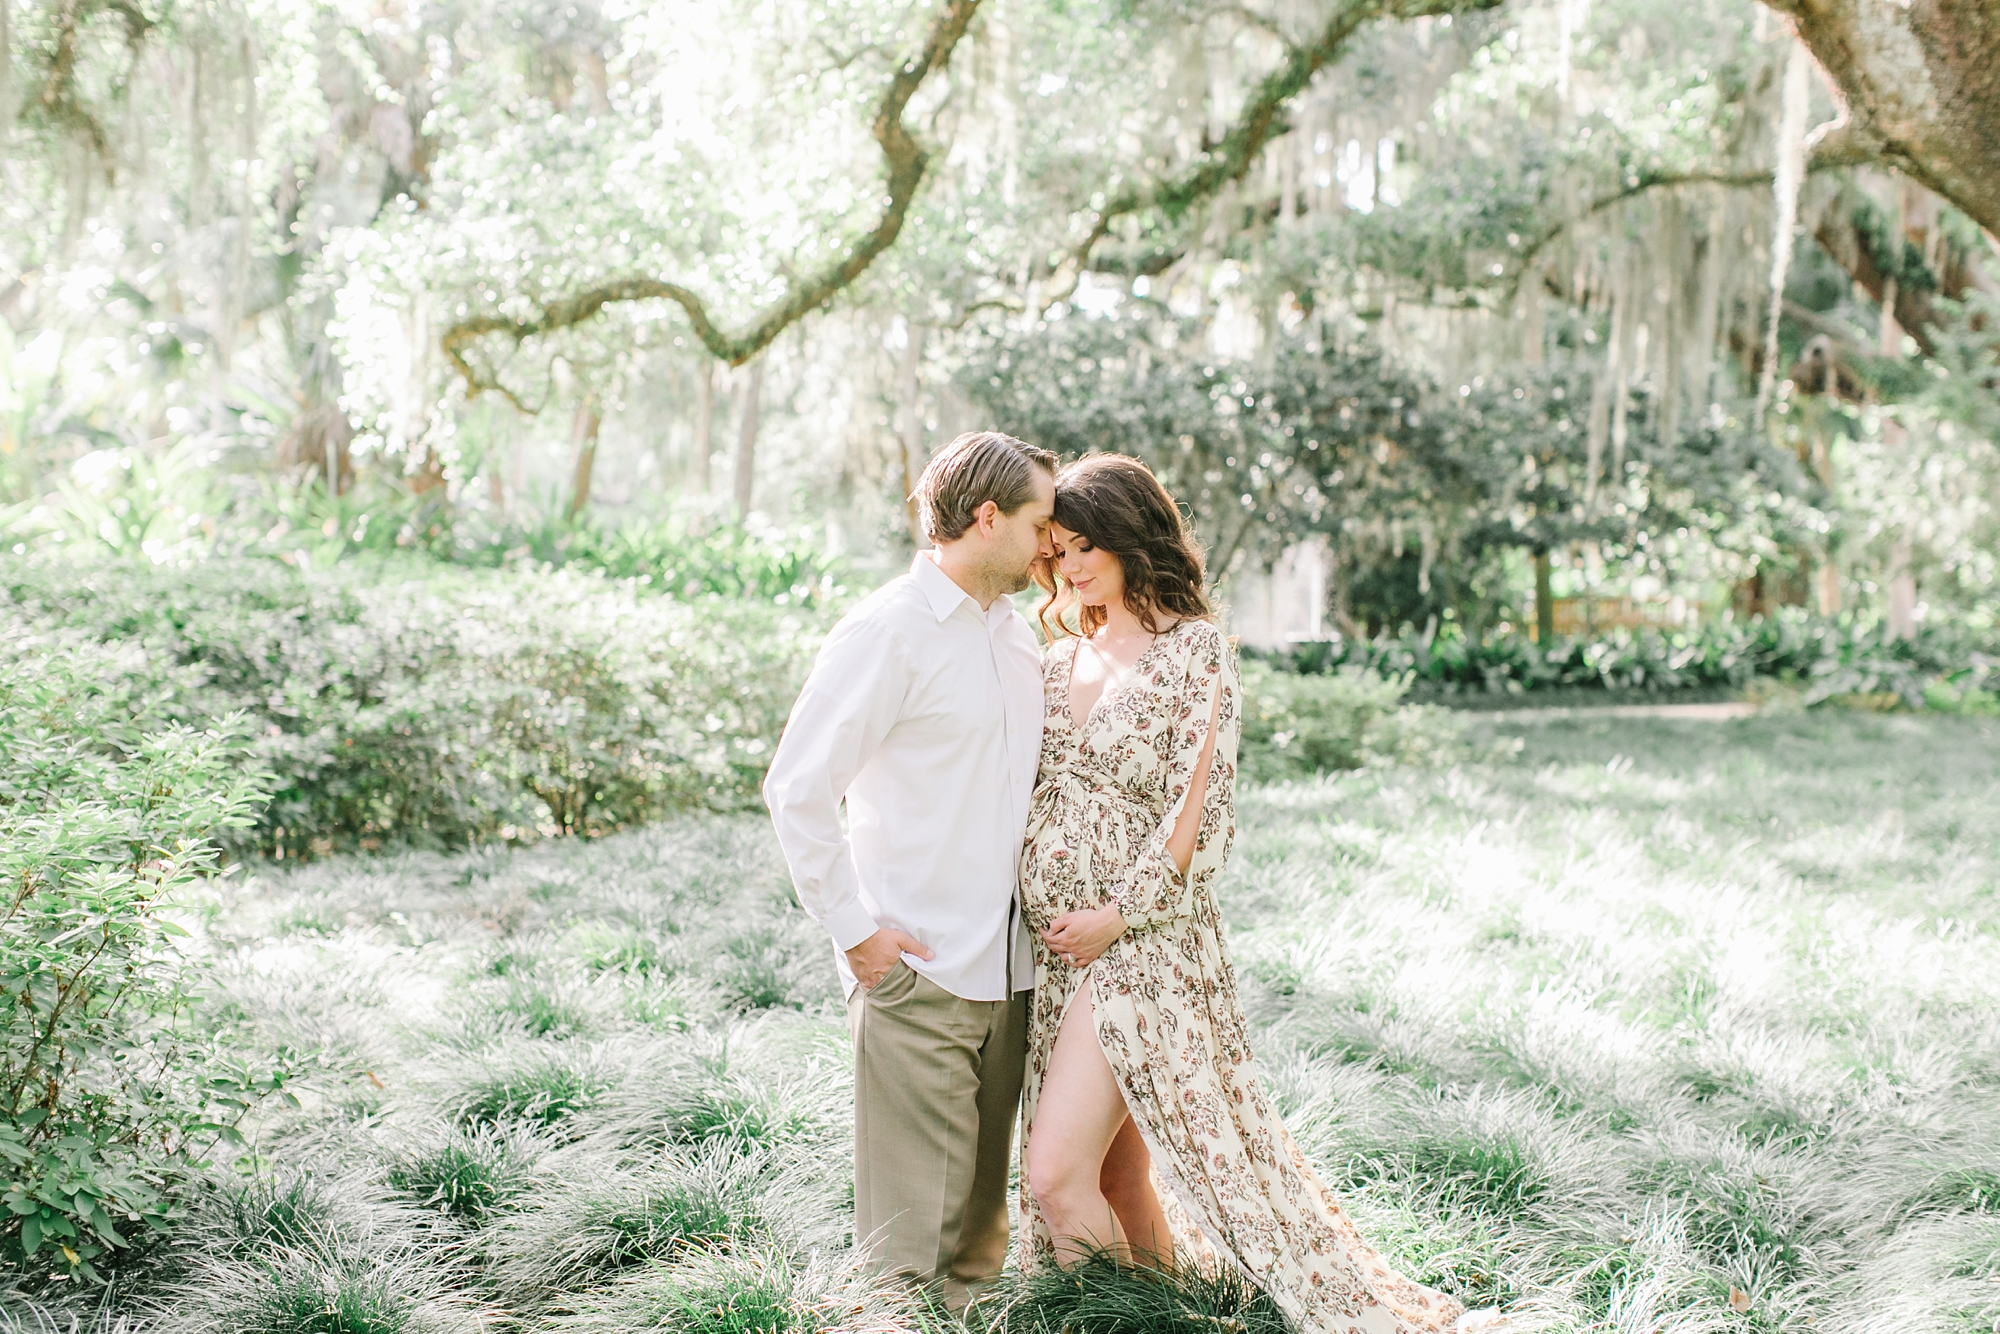 Natalie Broach Photography| Jacksonville Maternity Session | Washington Oaks State Park, Palm Coast| North Florida Lifestyle Maternity | Kristy and Travis Maternity Session